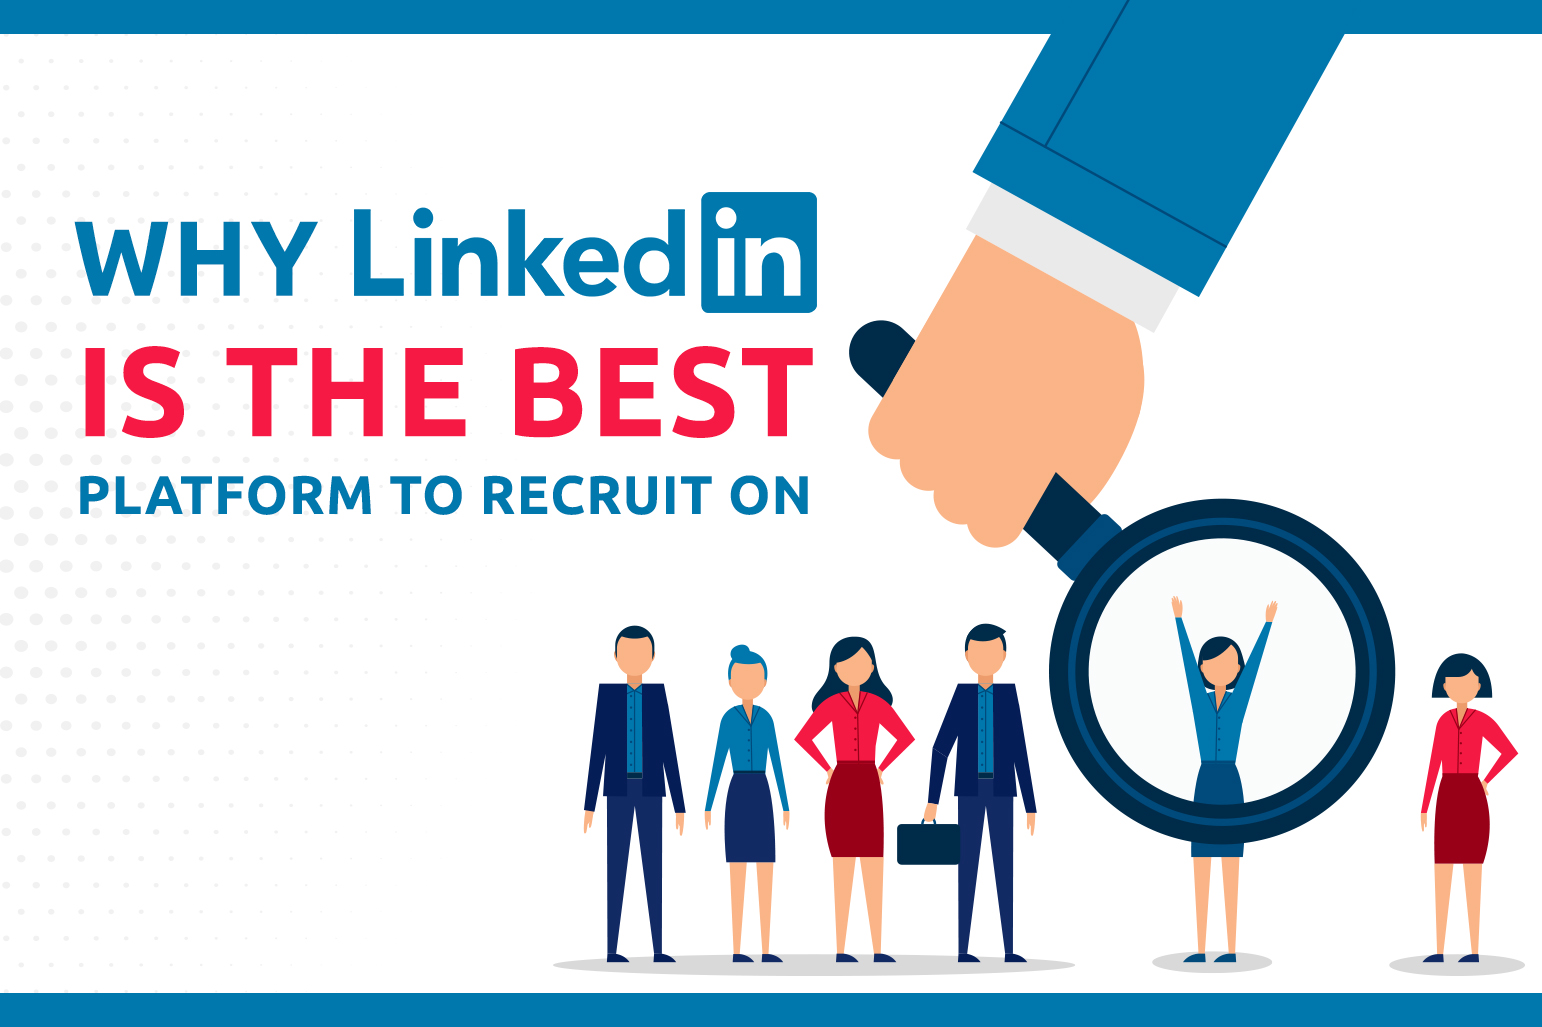 Why LinkedIn Is The Best Platform To Recruit On